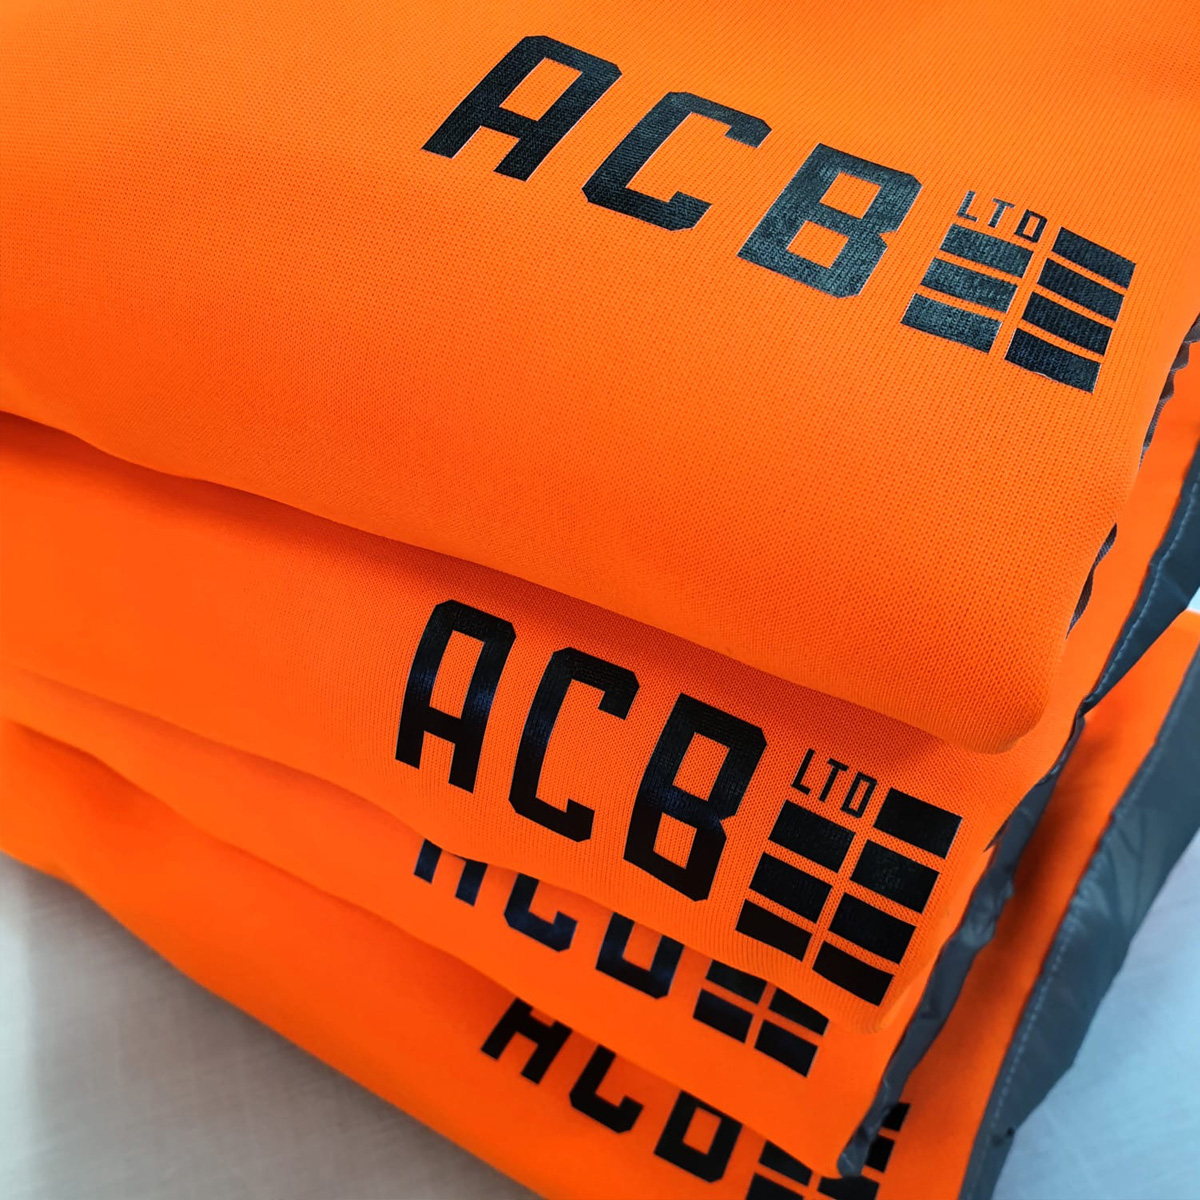 a1-graphics-print-and-promotion-workwear-and-clothing-5